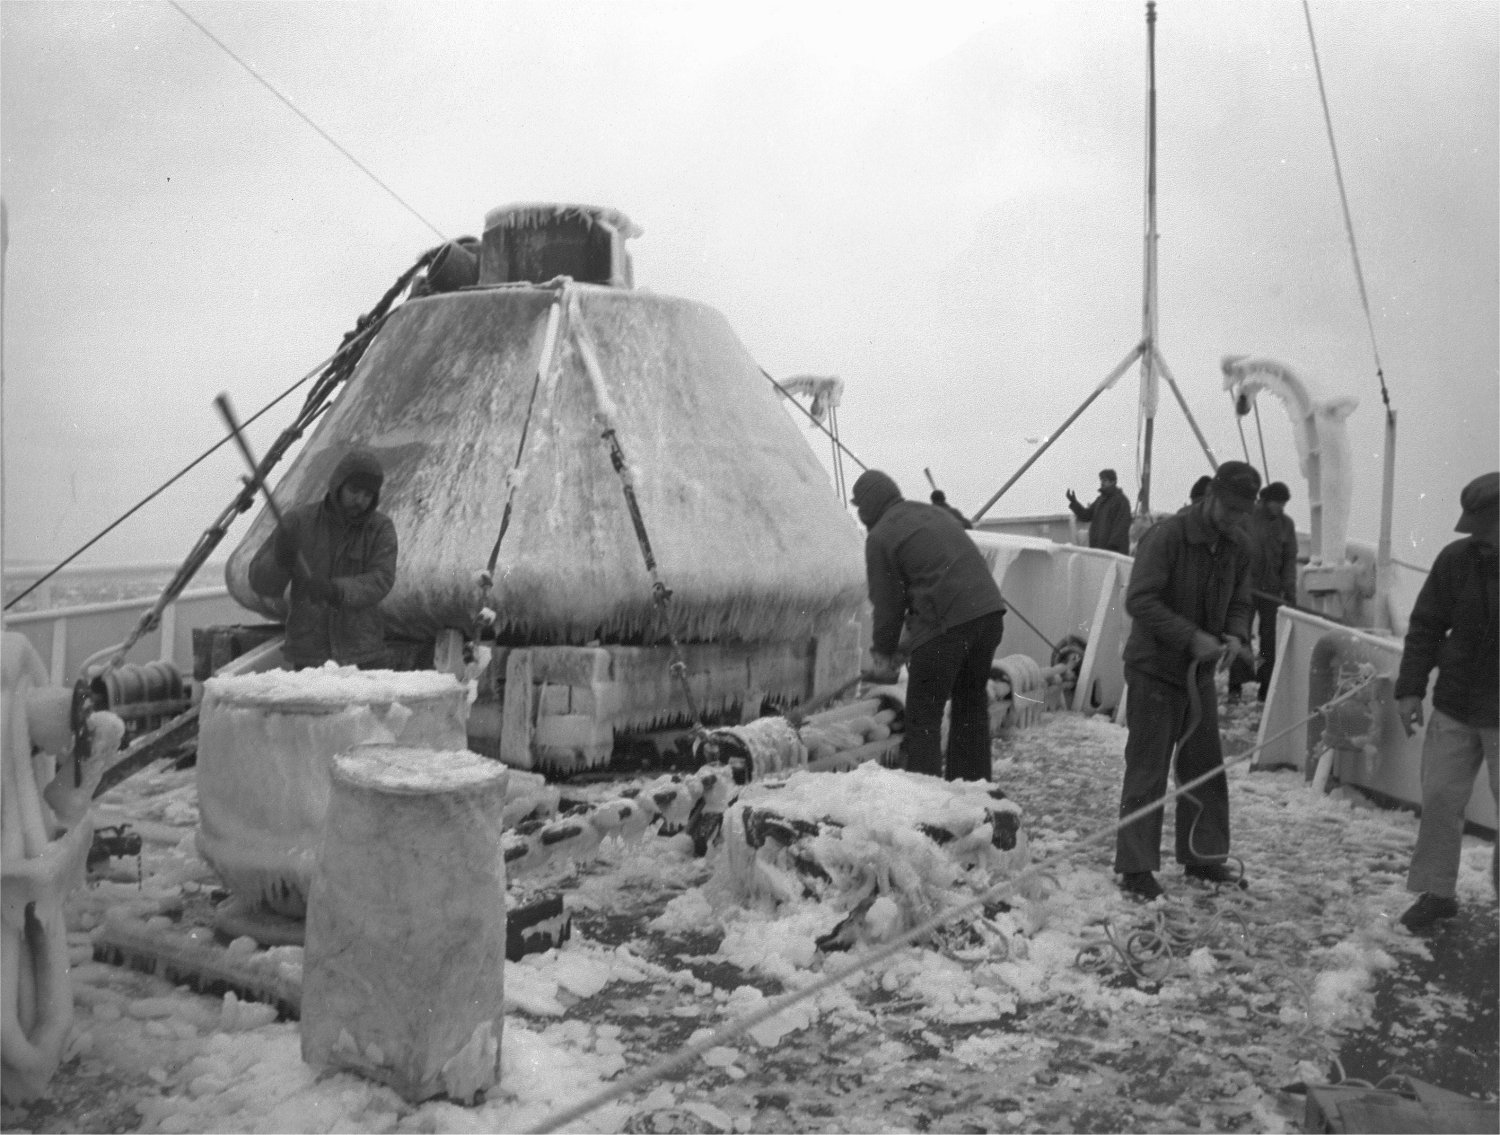 USCGC Southwind (WAGB-280) crew members chip away at ice while in Baffin Bay, November 1970. Note the Apollo capsule on the deck. USCG Photo scanned from Southwind's Arctic East 70 scrapbook.